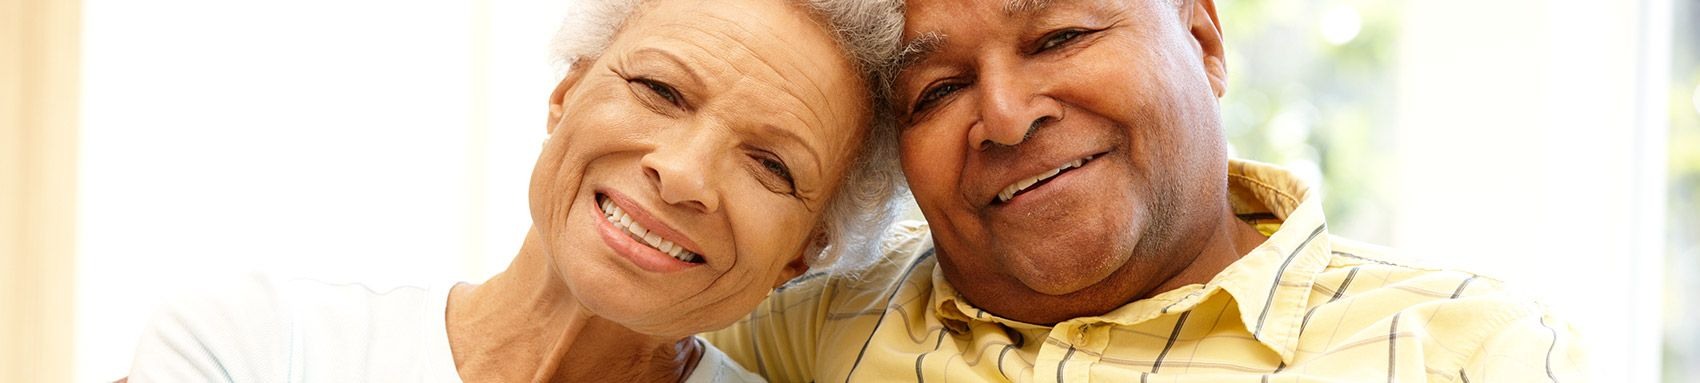 Removable and Fixed Dentures - Earl E Gaball DDS